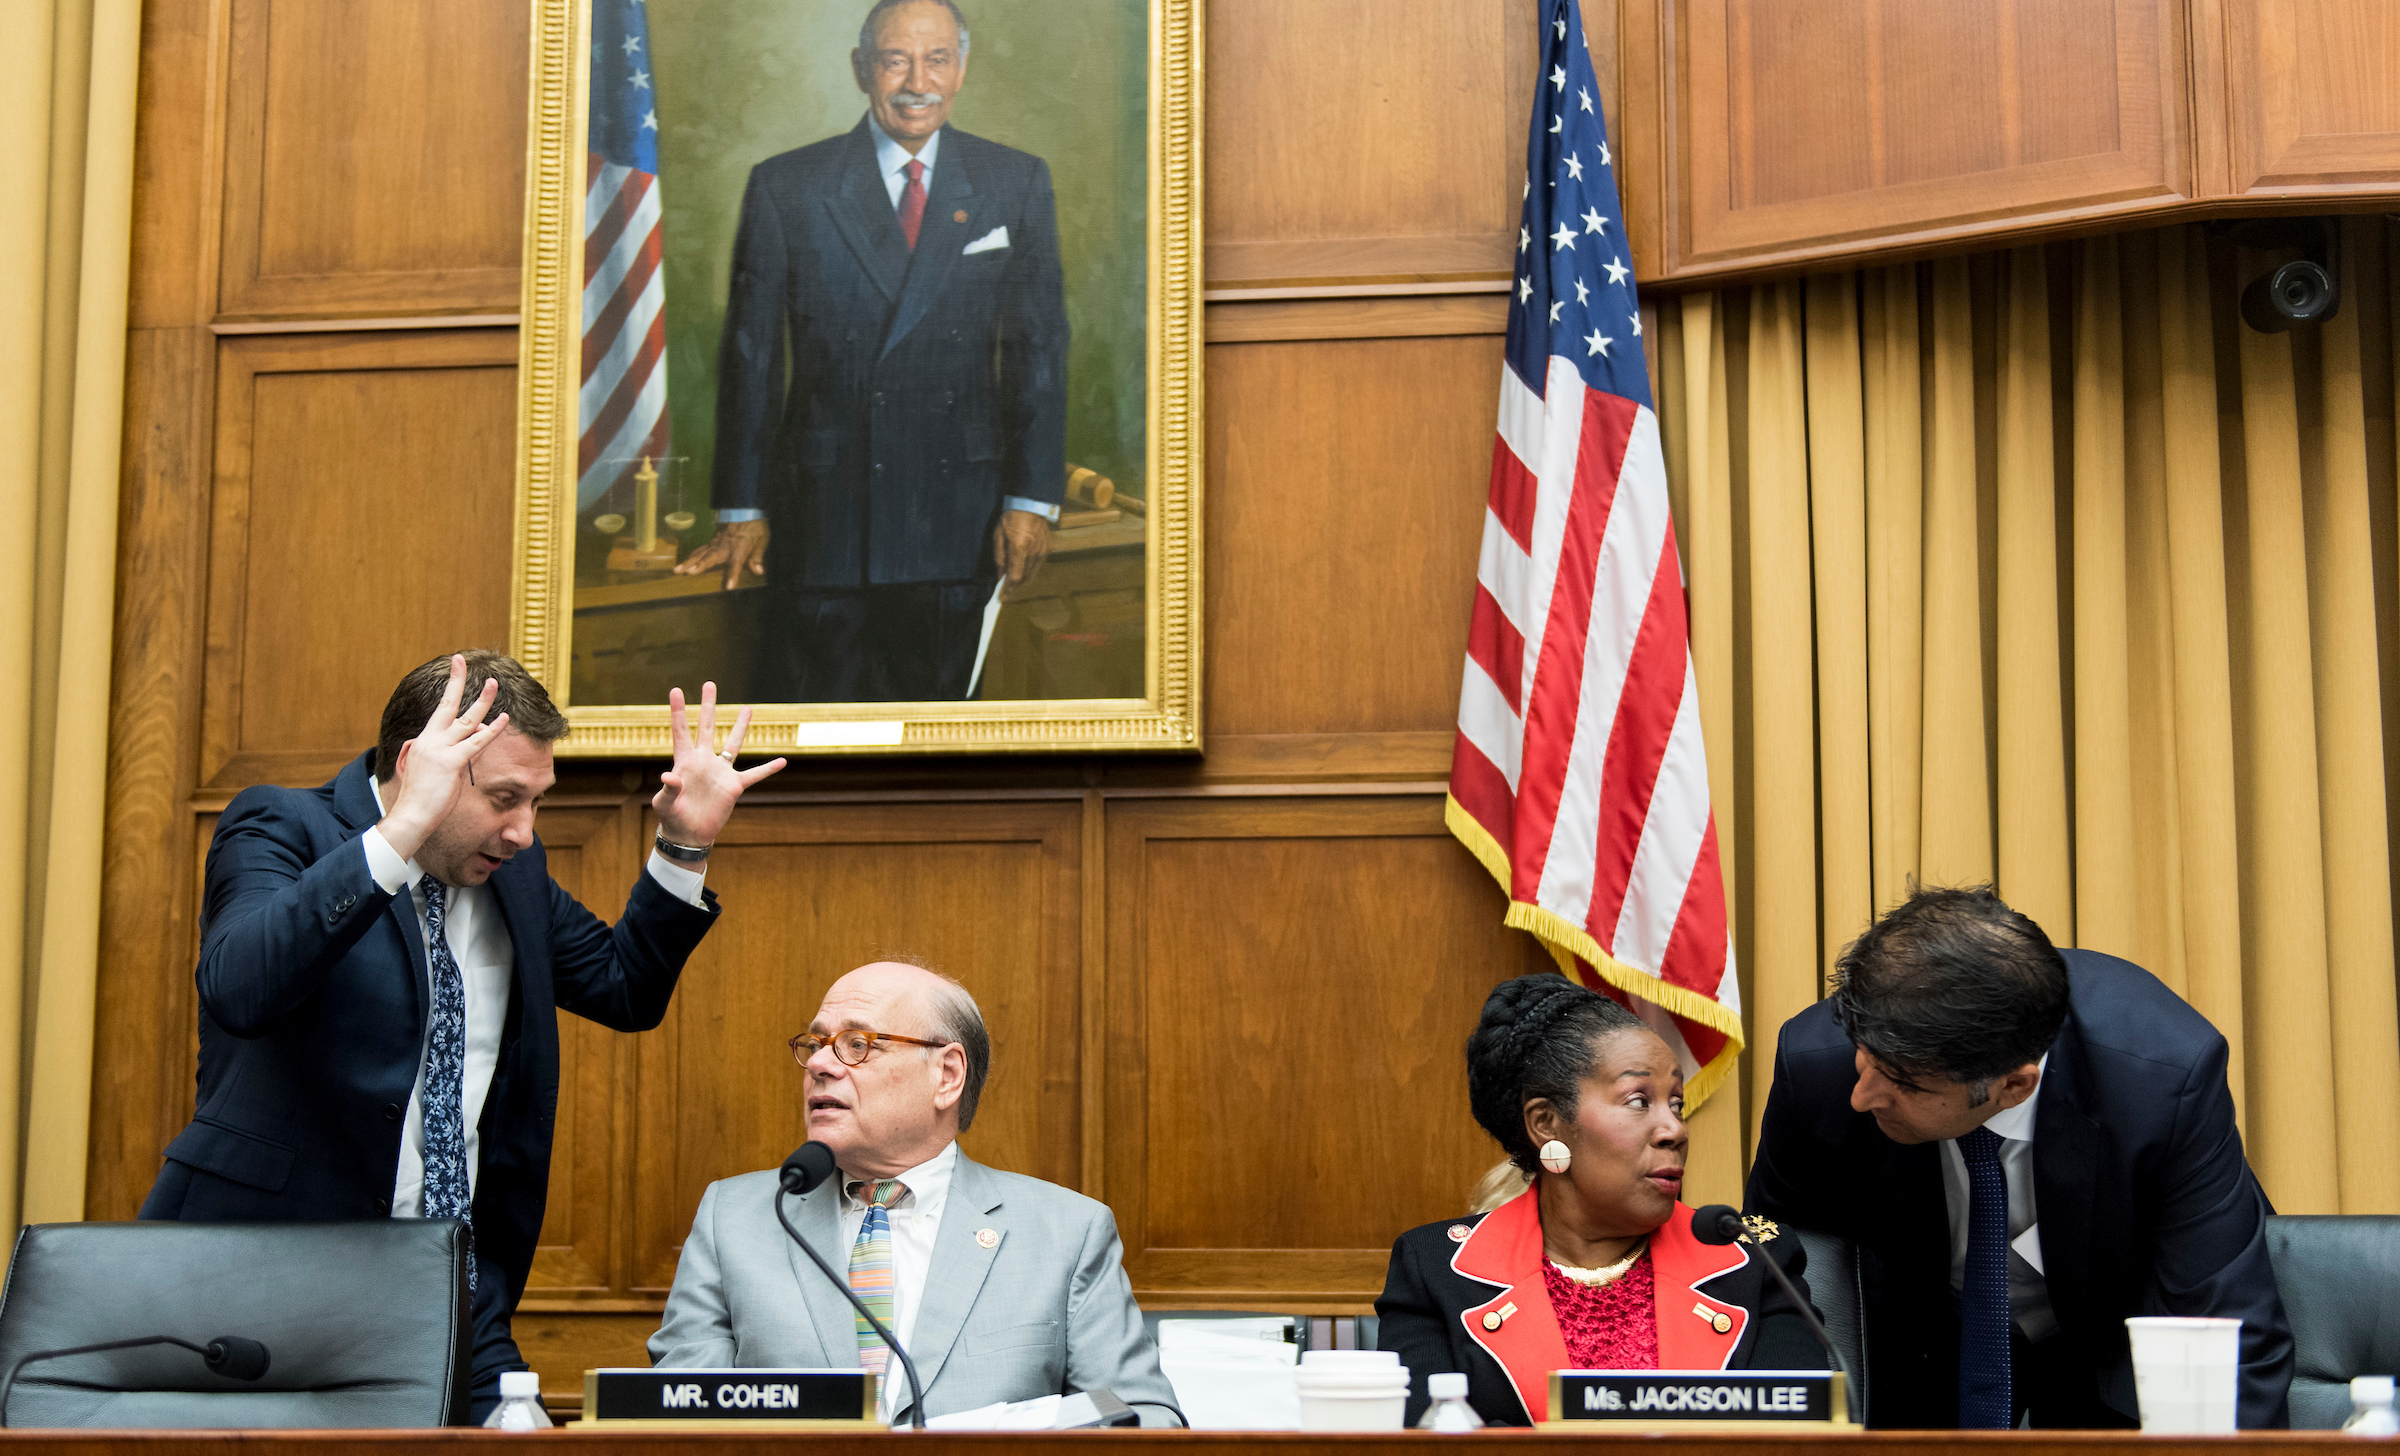 "Rep. Steve Coehn, D-Tenn., and Rep. Sheila Jackson Lee, D-Texas, confere with staffers during a recess in the House Judiciary Committee hearing on ""Oversight of the Report on the Investigation into Russian Interference in the 2016 Presidential Election"" on Wednesday, July 24, 2019. (Photo By Bill Clark/CQ Roll Call)"